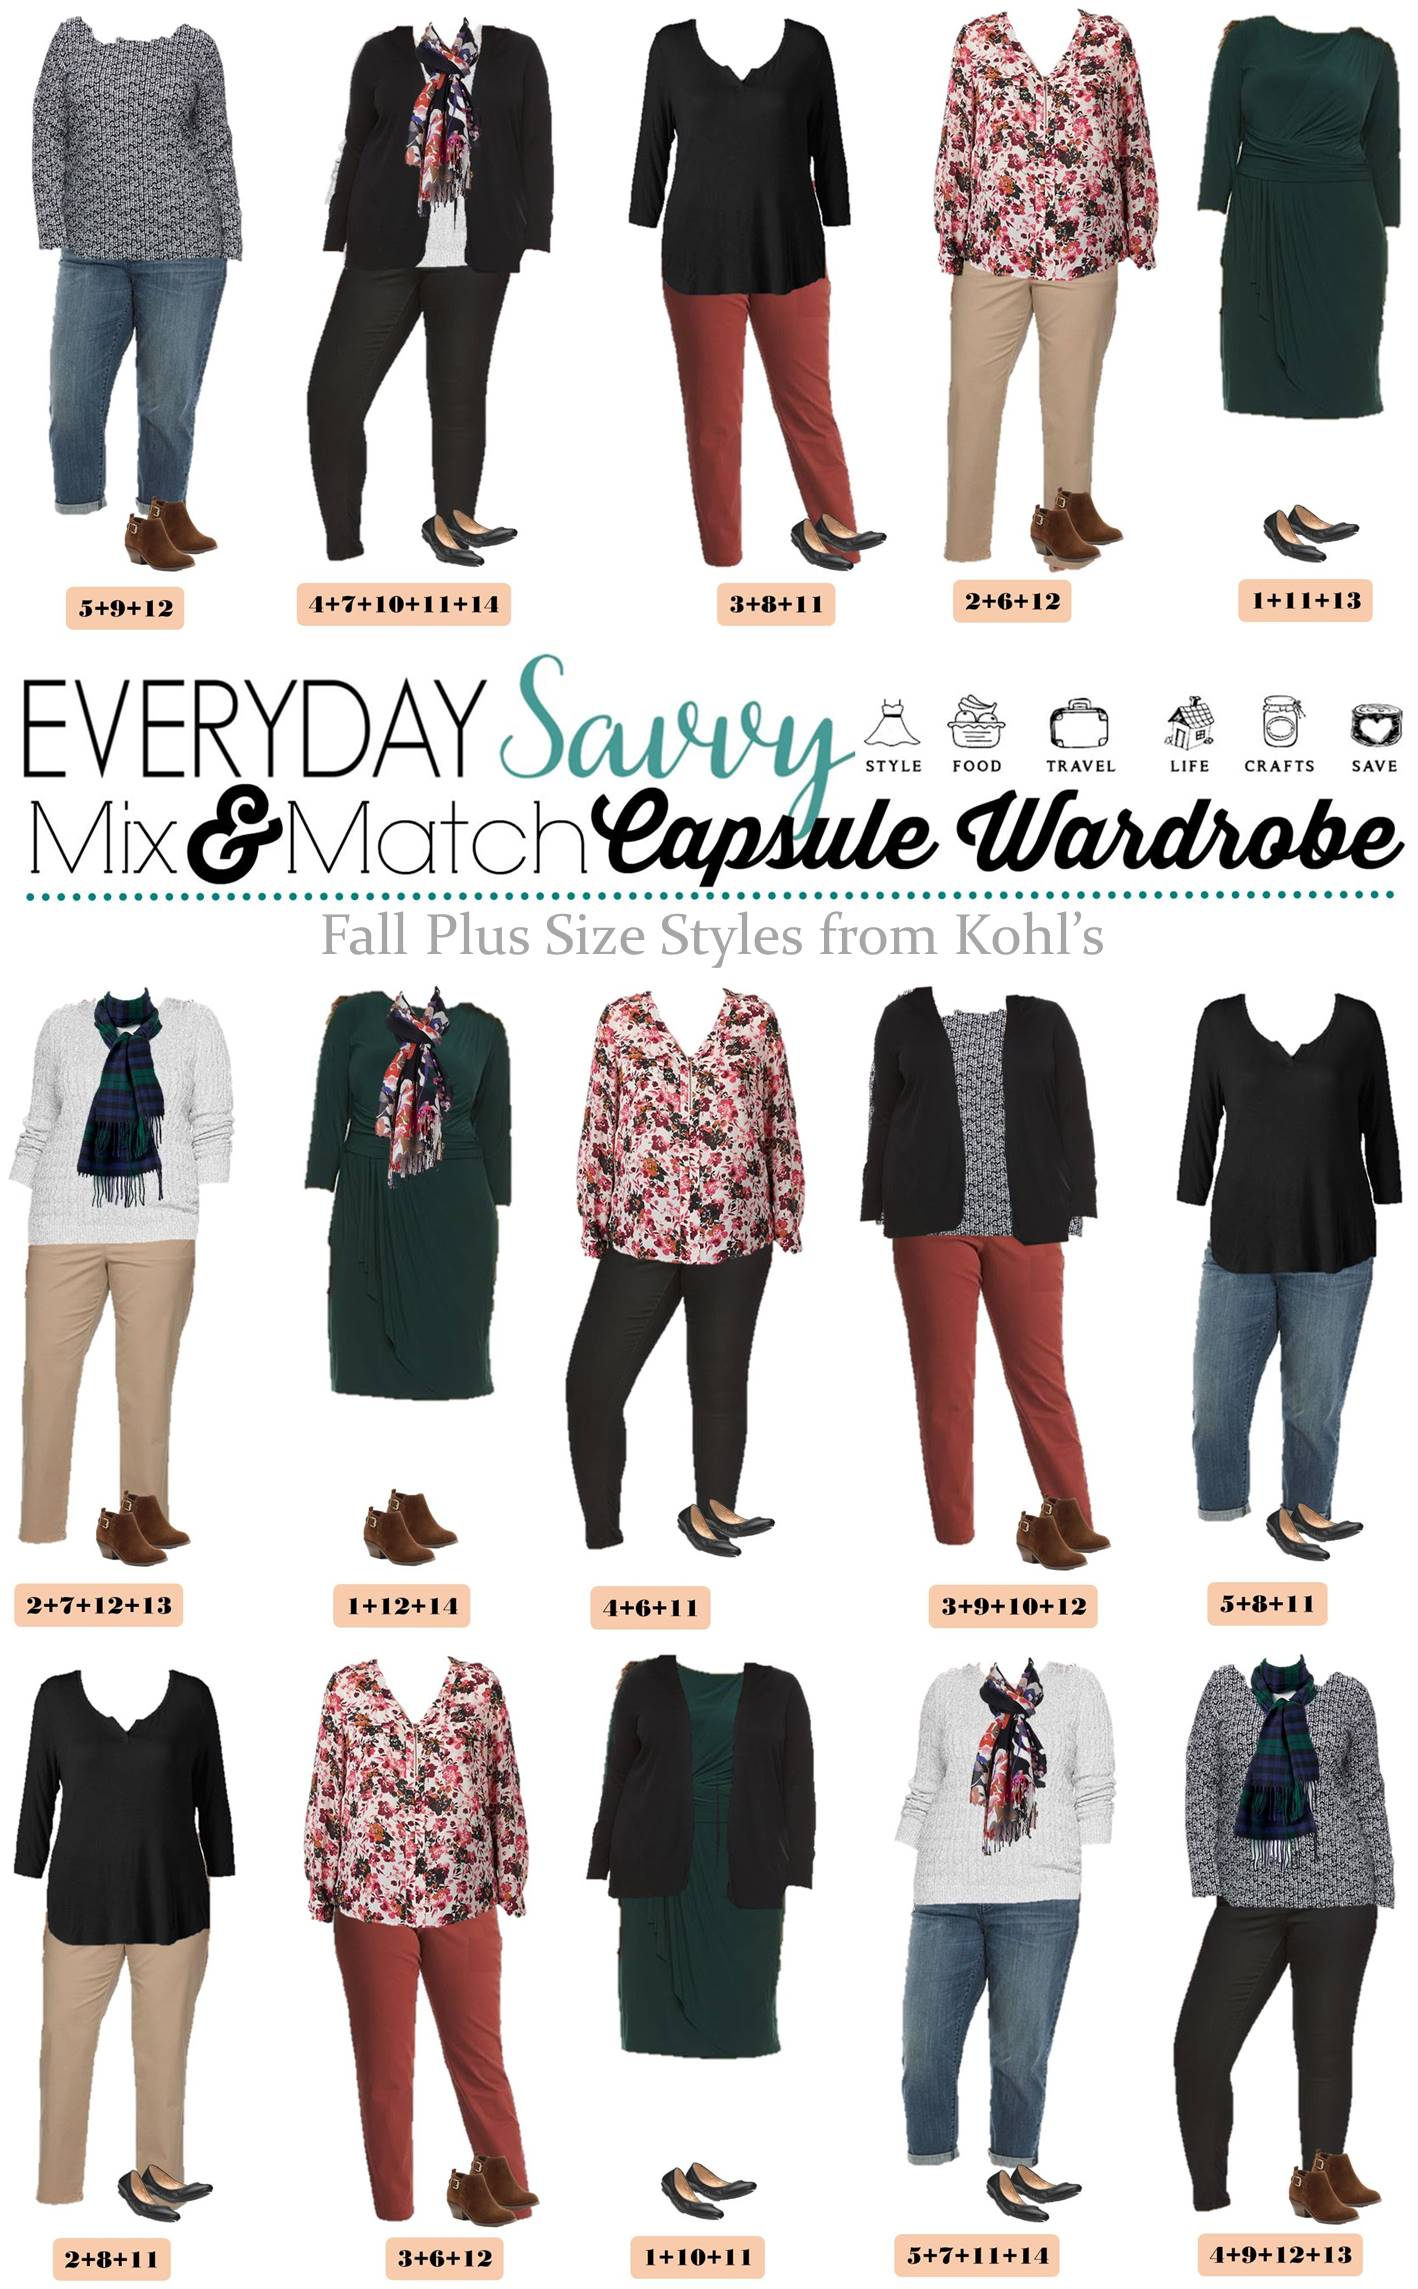 Fall Plus Size Outfits From Kohls Mini Capsule Mix Amp Match